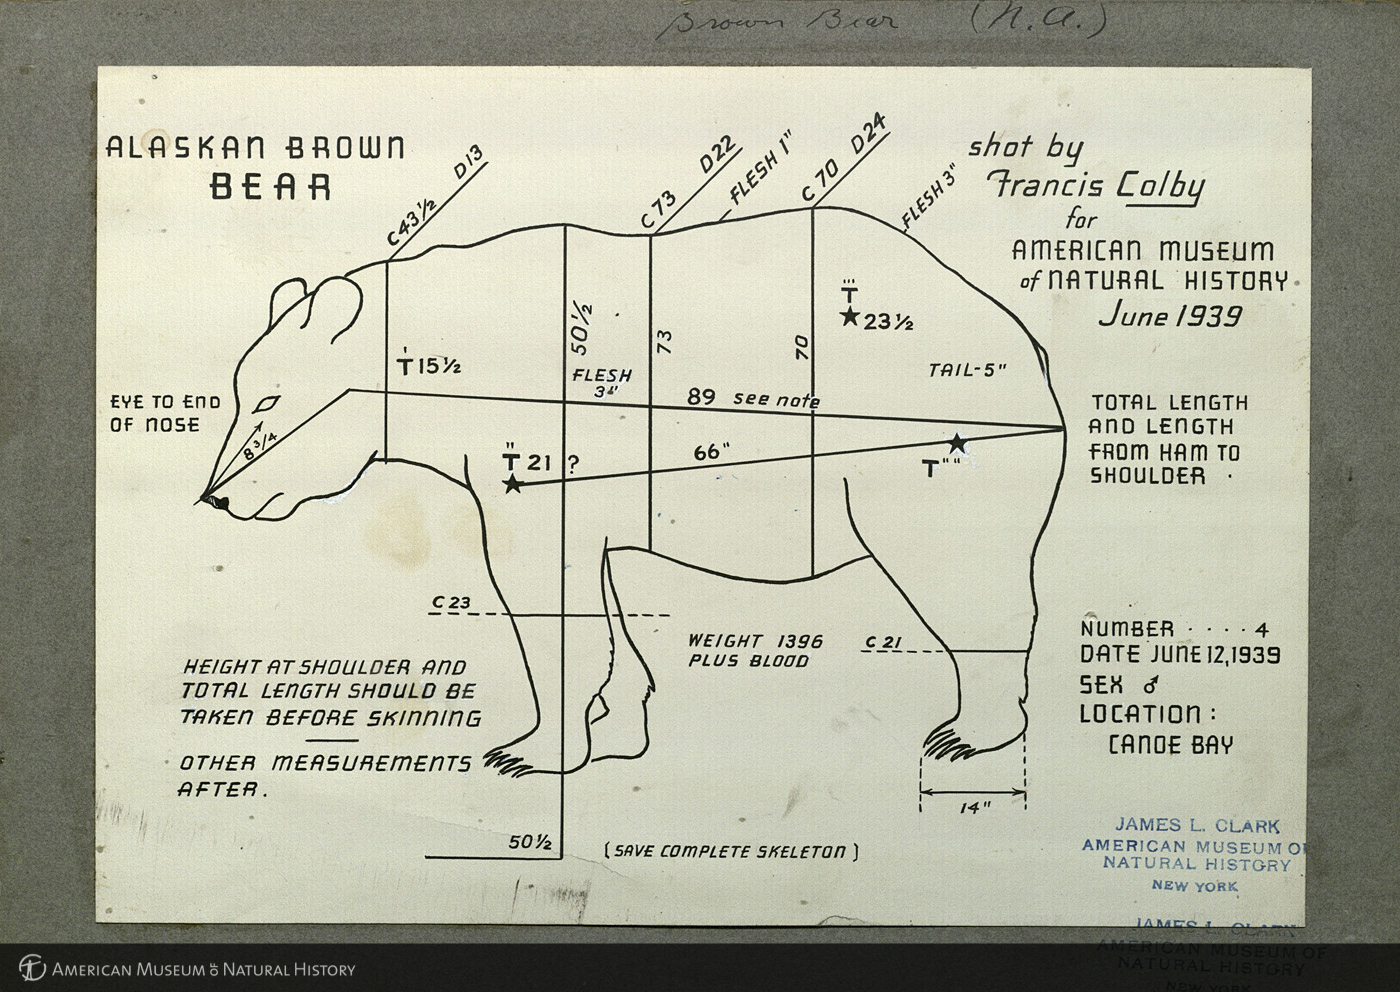 Alaska brown bear specimen measurement chart from AMNH